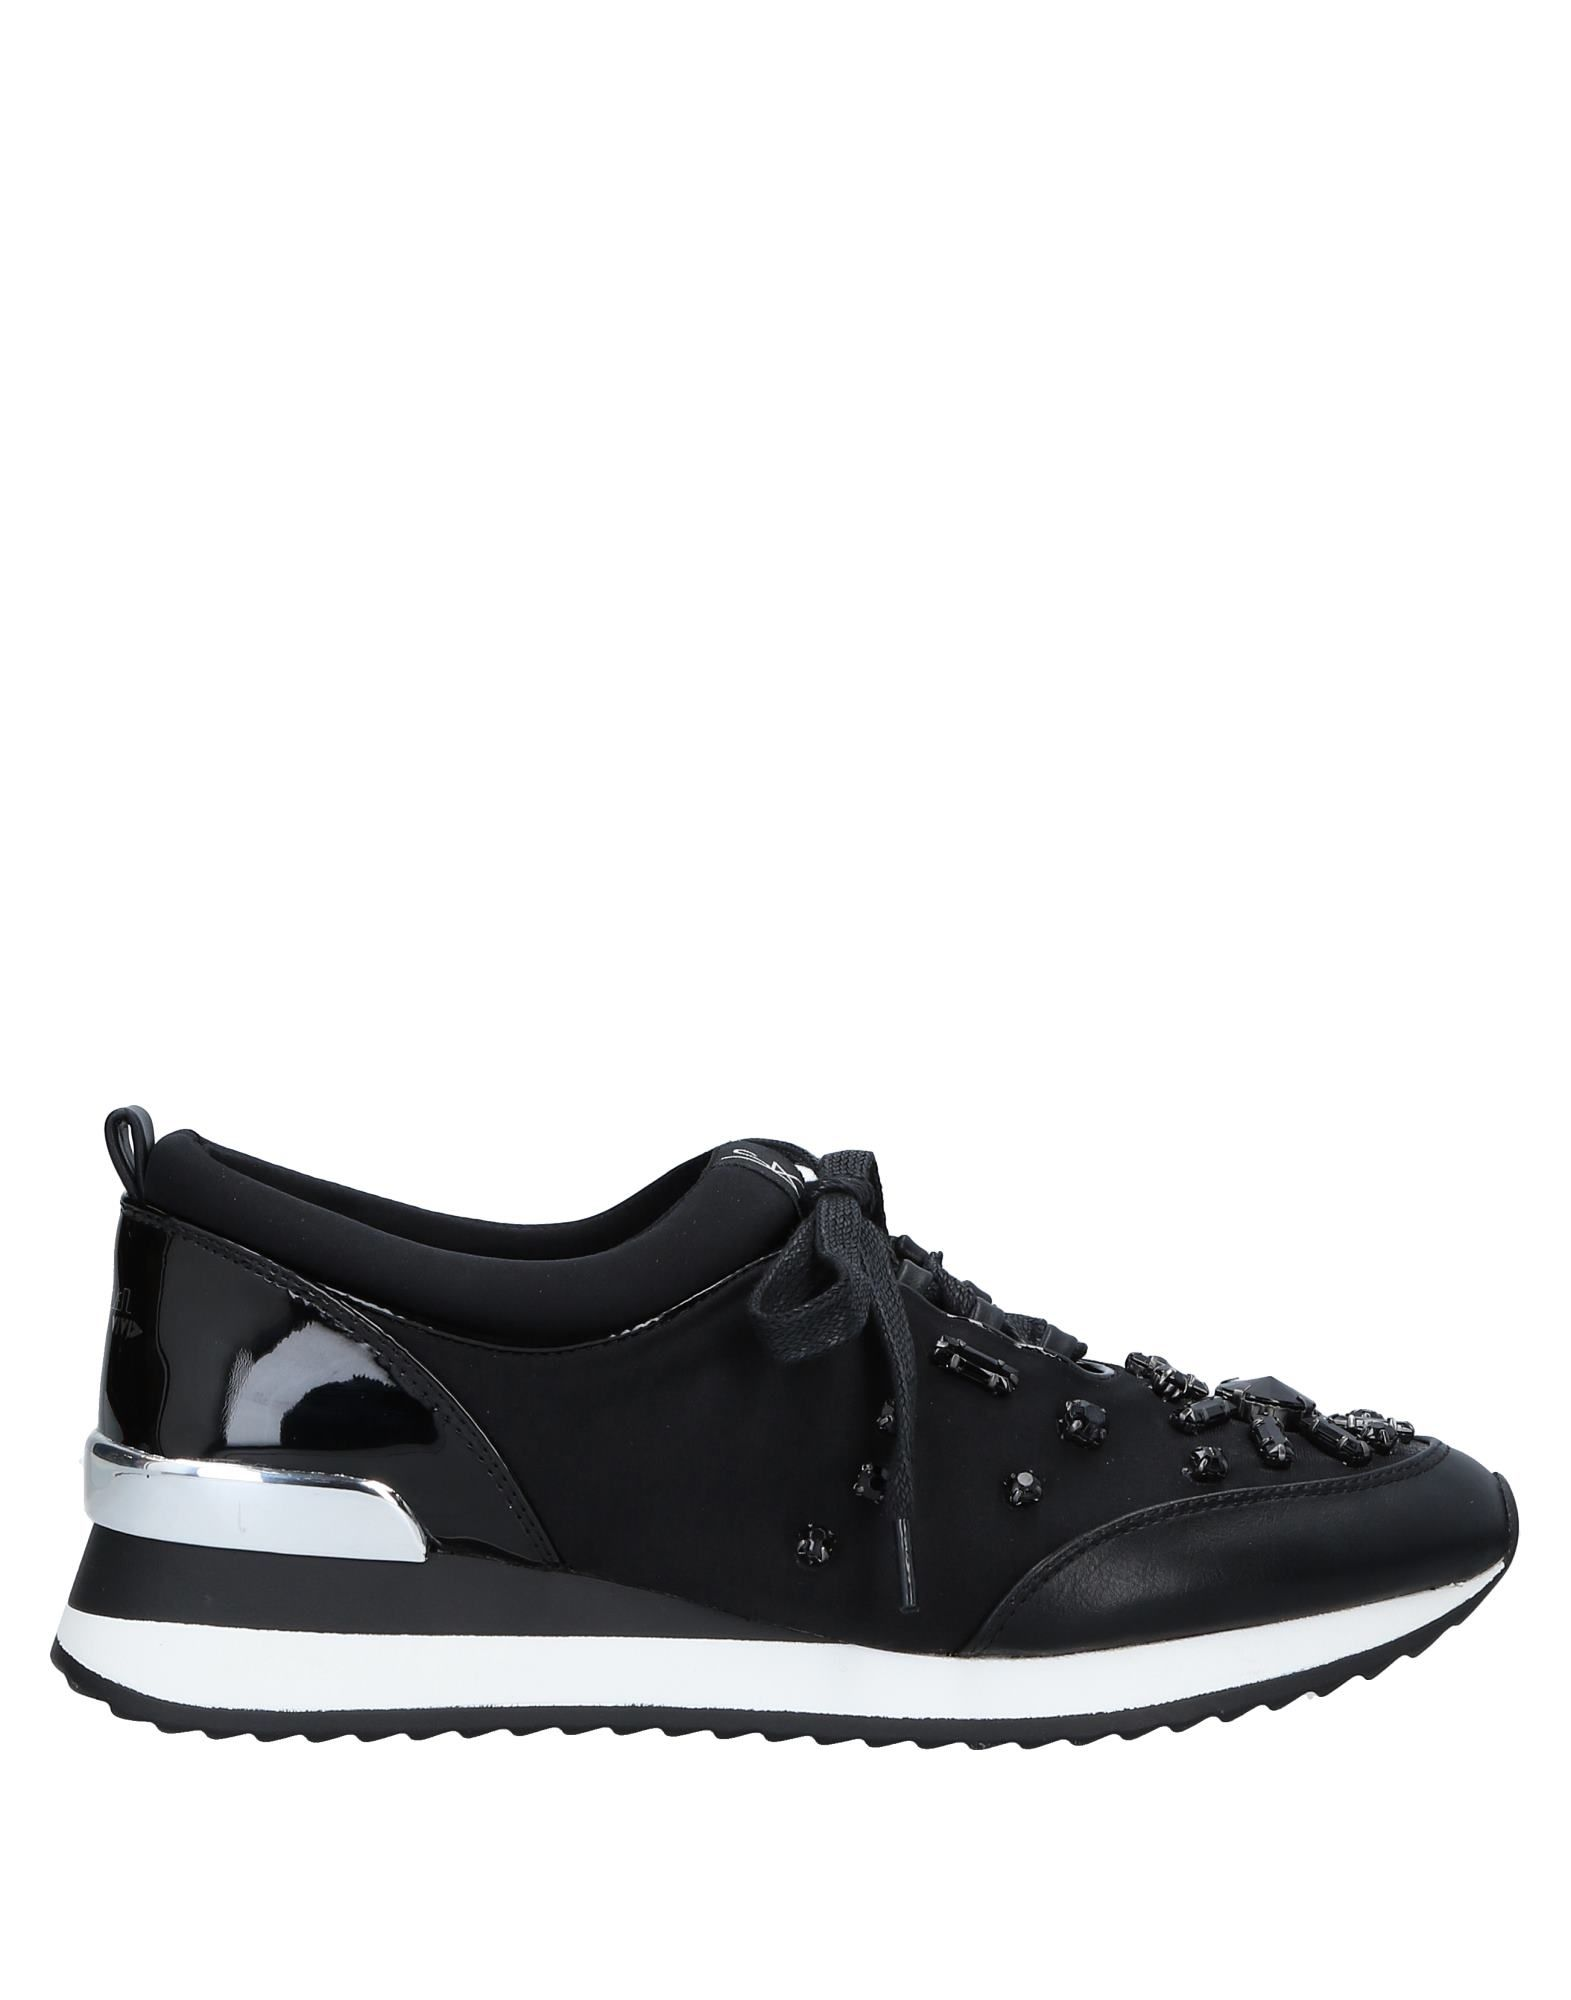 67 Sixtyseven Sneakers Sneakers Sixtyseven Damen  11541701DI 58649a